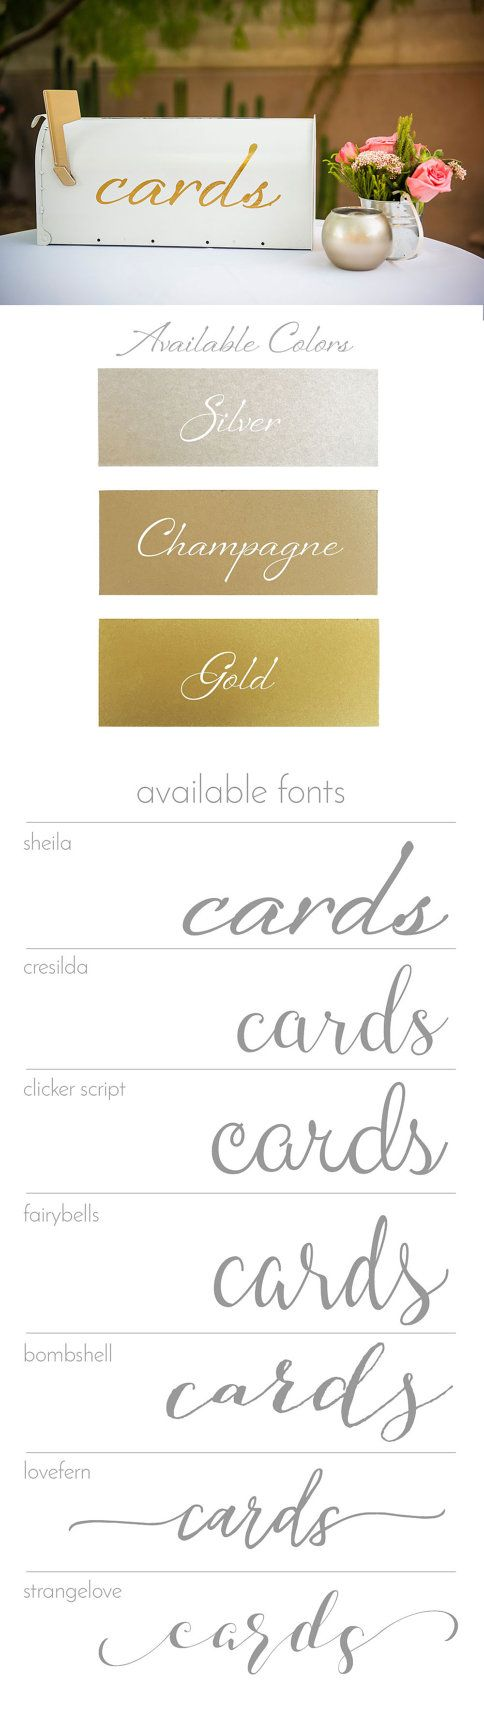 Collect wedding cards in your own custom-painted mailbox! Choose a script font and text color to perfectly match your decor!